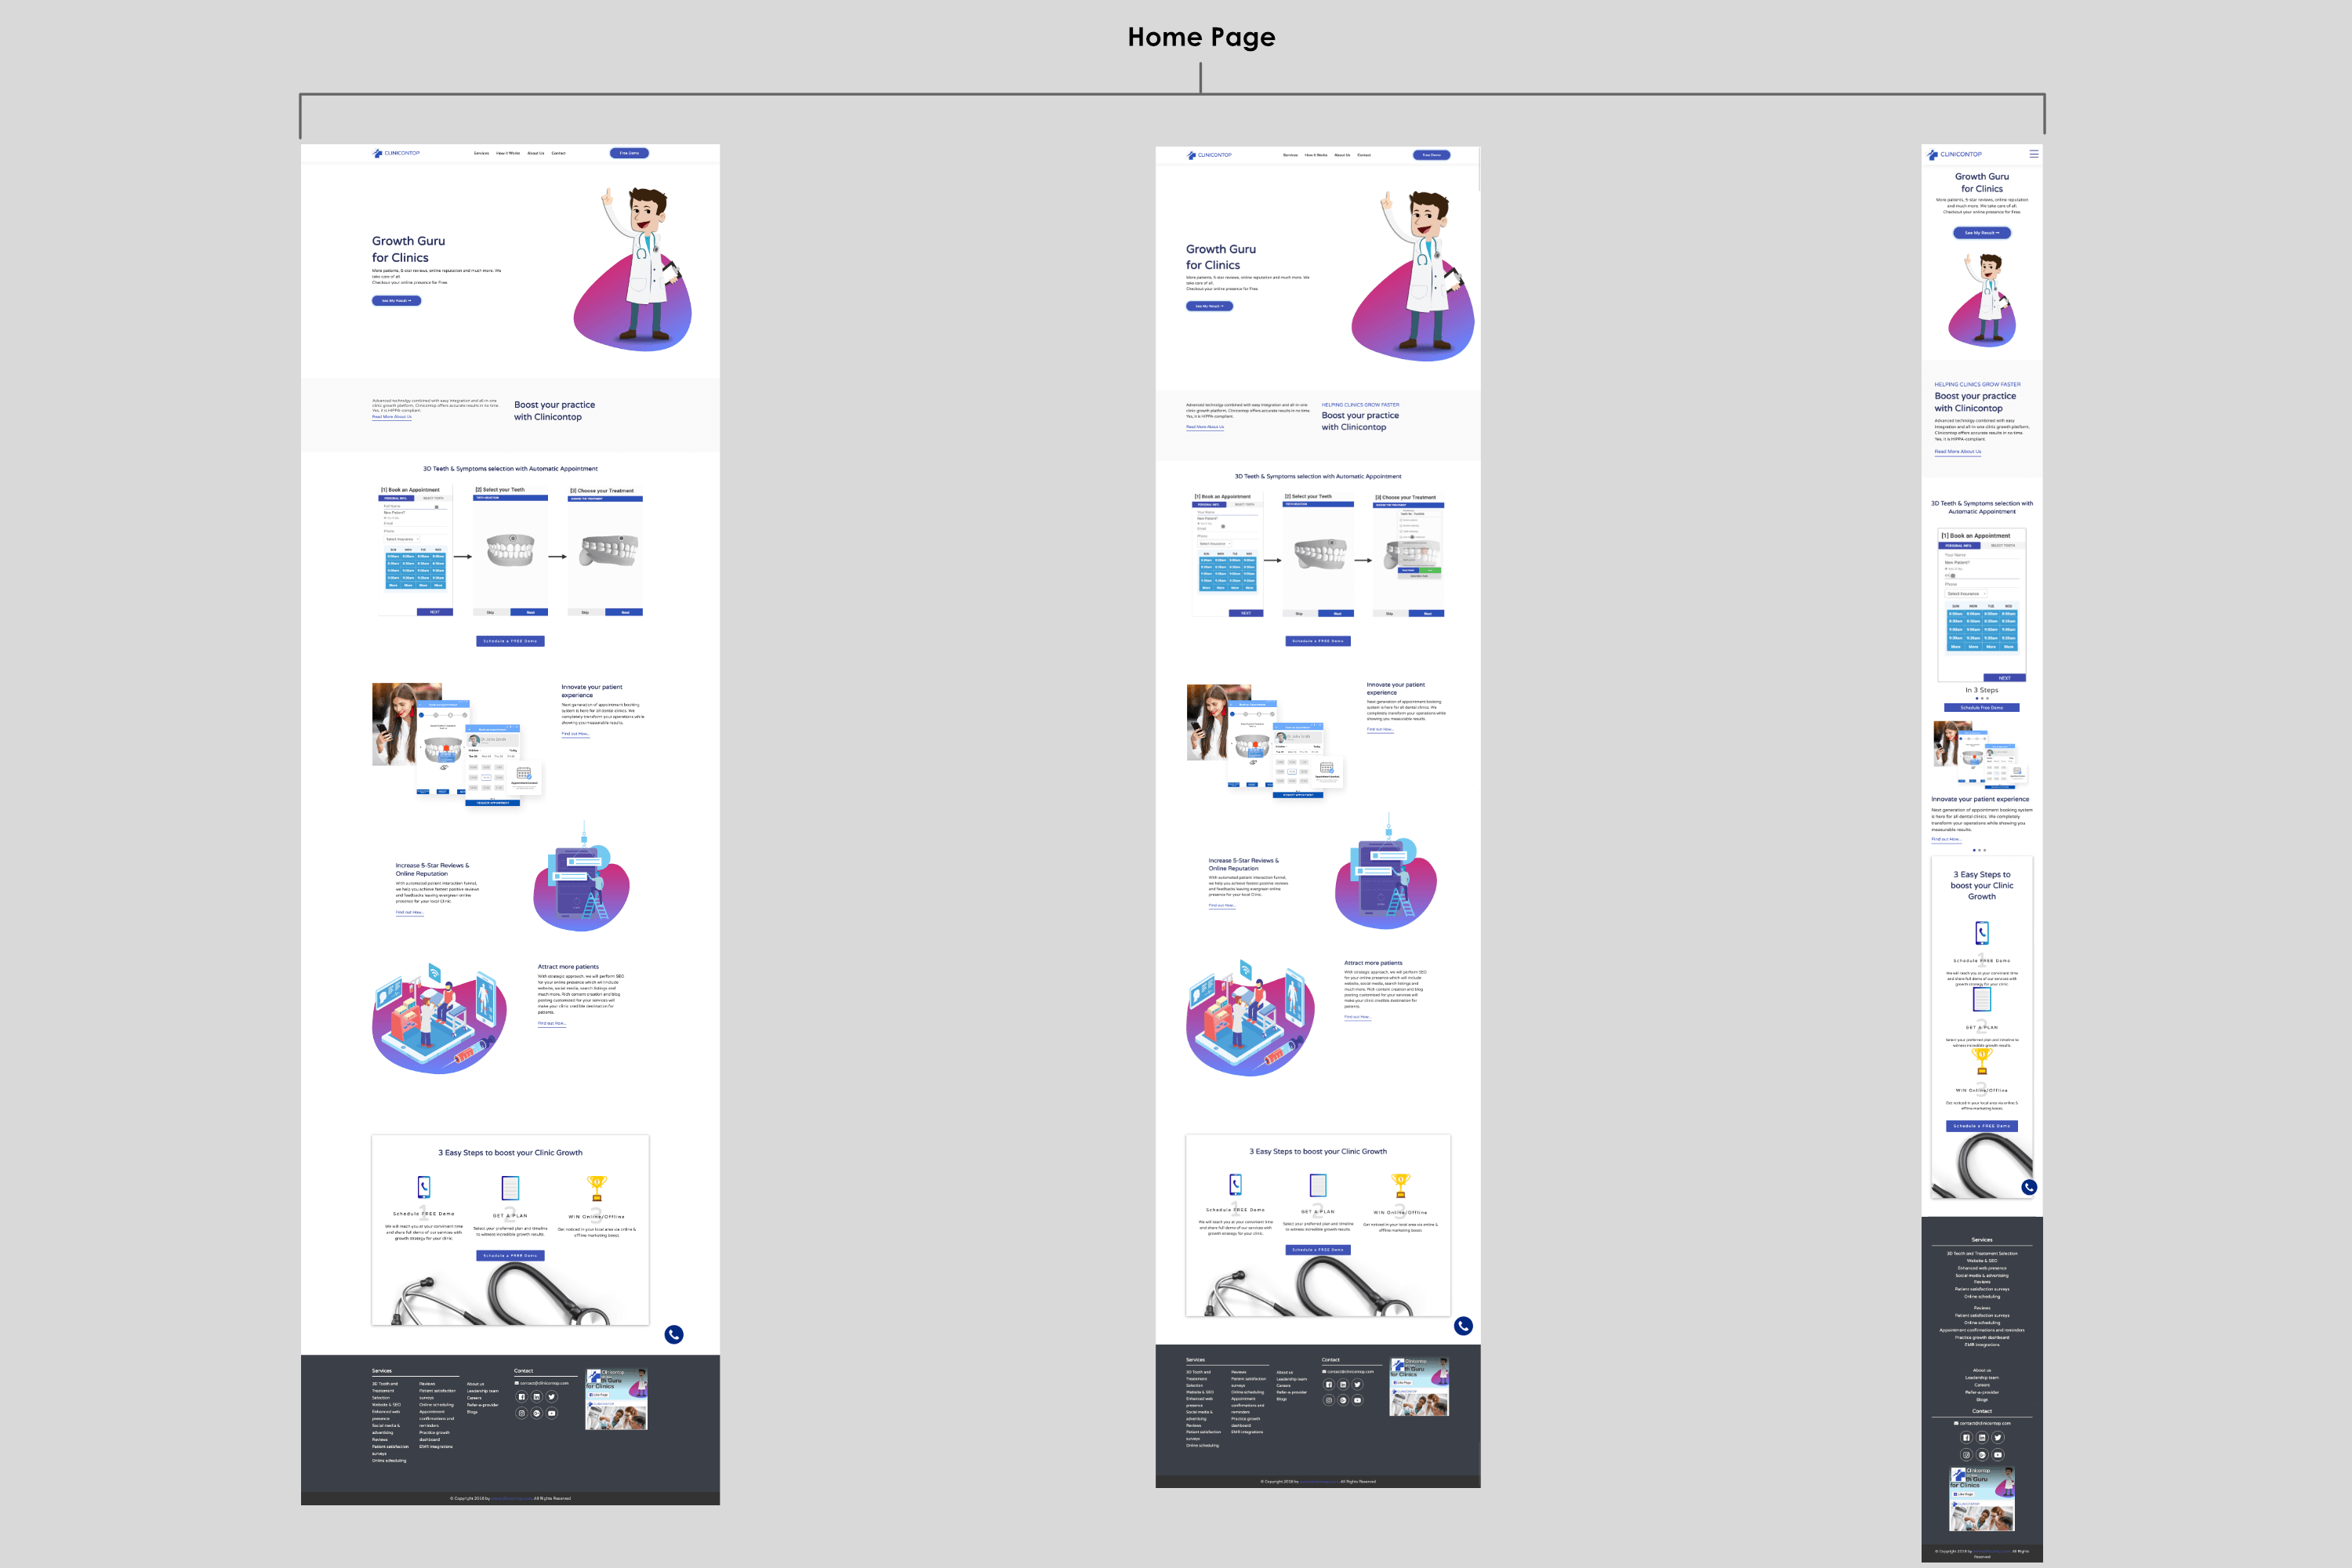 High Fidelity Wireframes Image